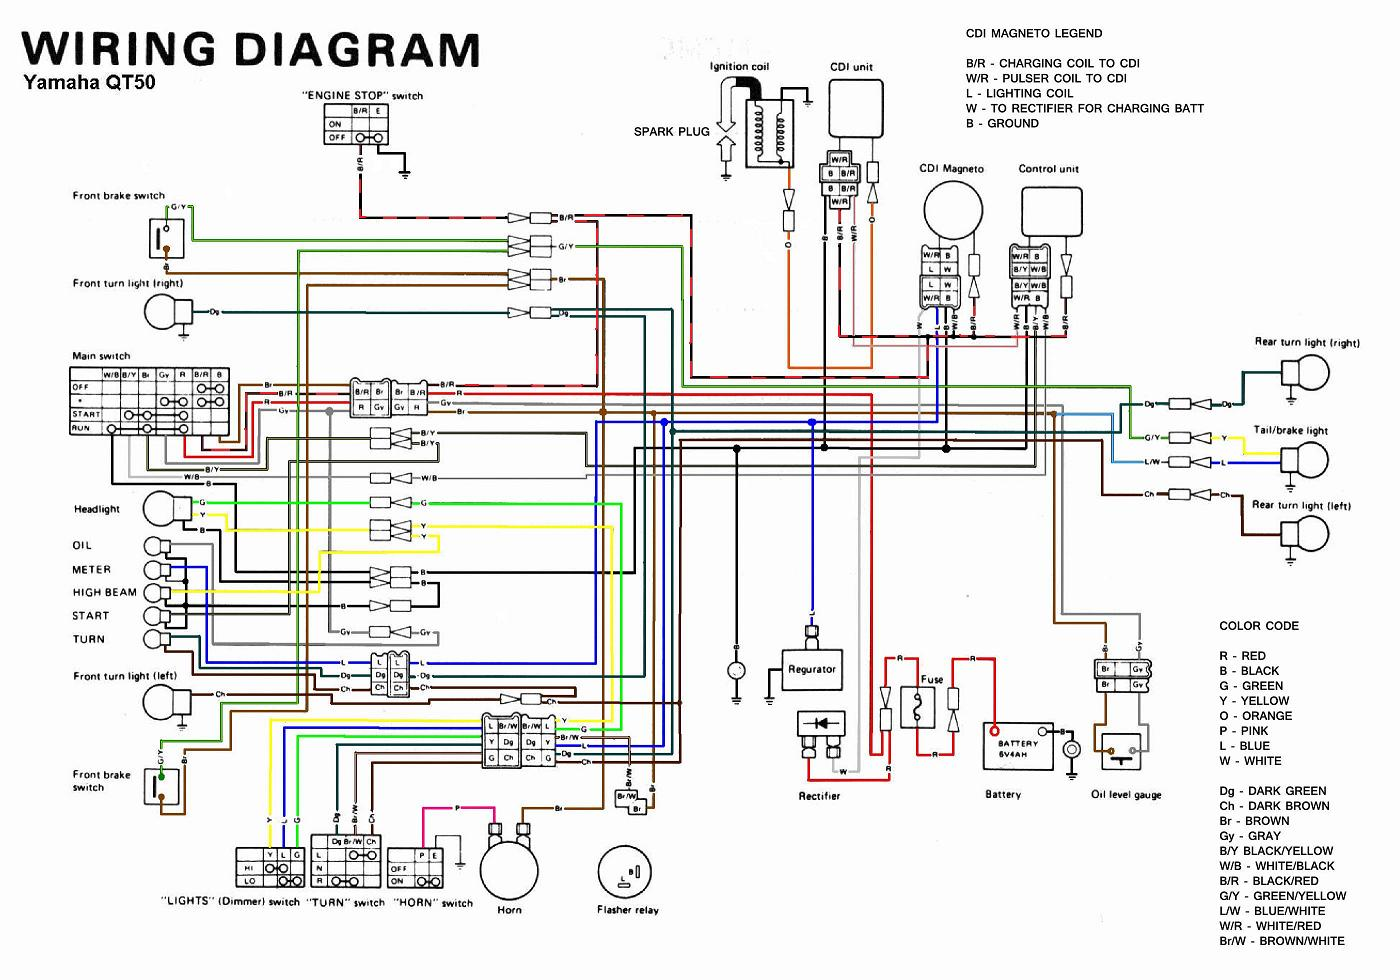 yamaha qt50 wiring diagram yamaha qt50 luvin and other nopeds rh qt50 net yamaha wiring diagrams multifunction gauges yamaha wiring diagram umax 2004